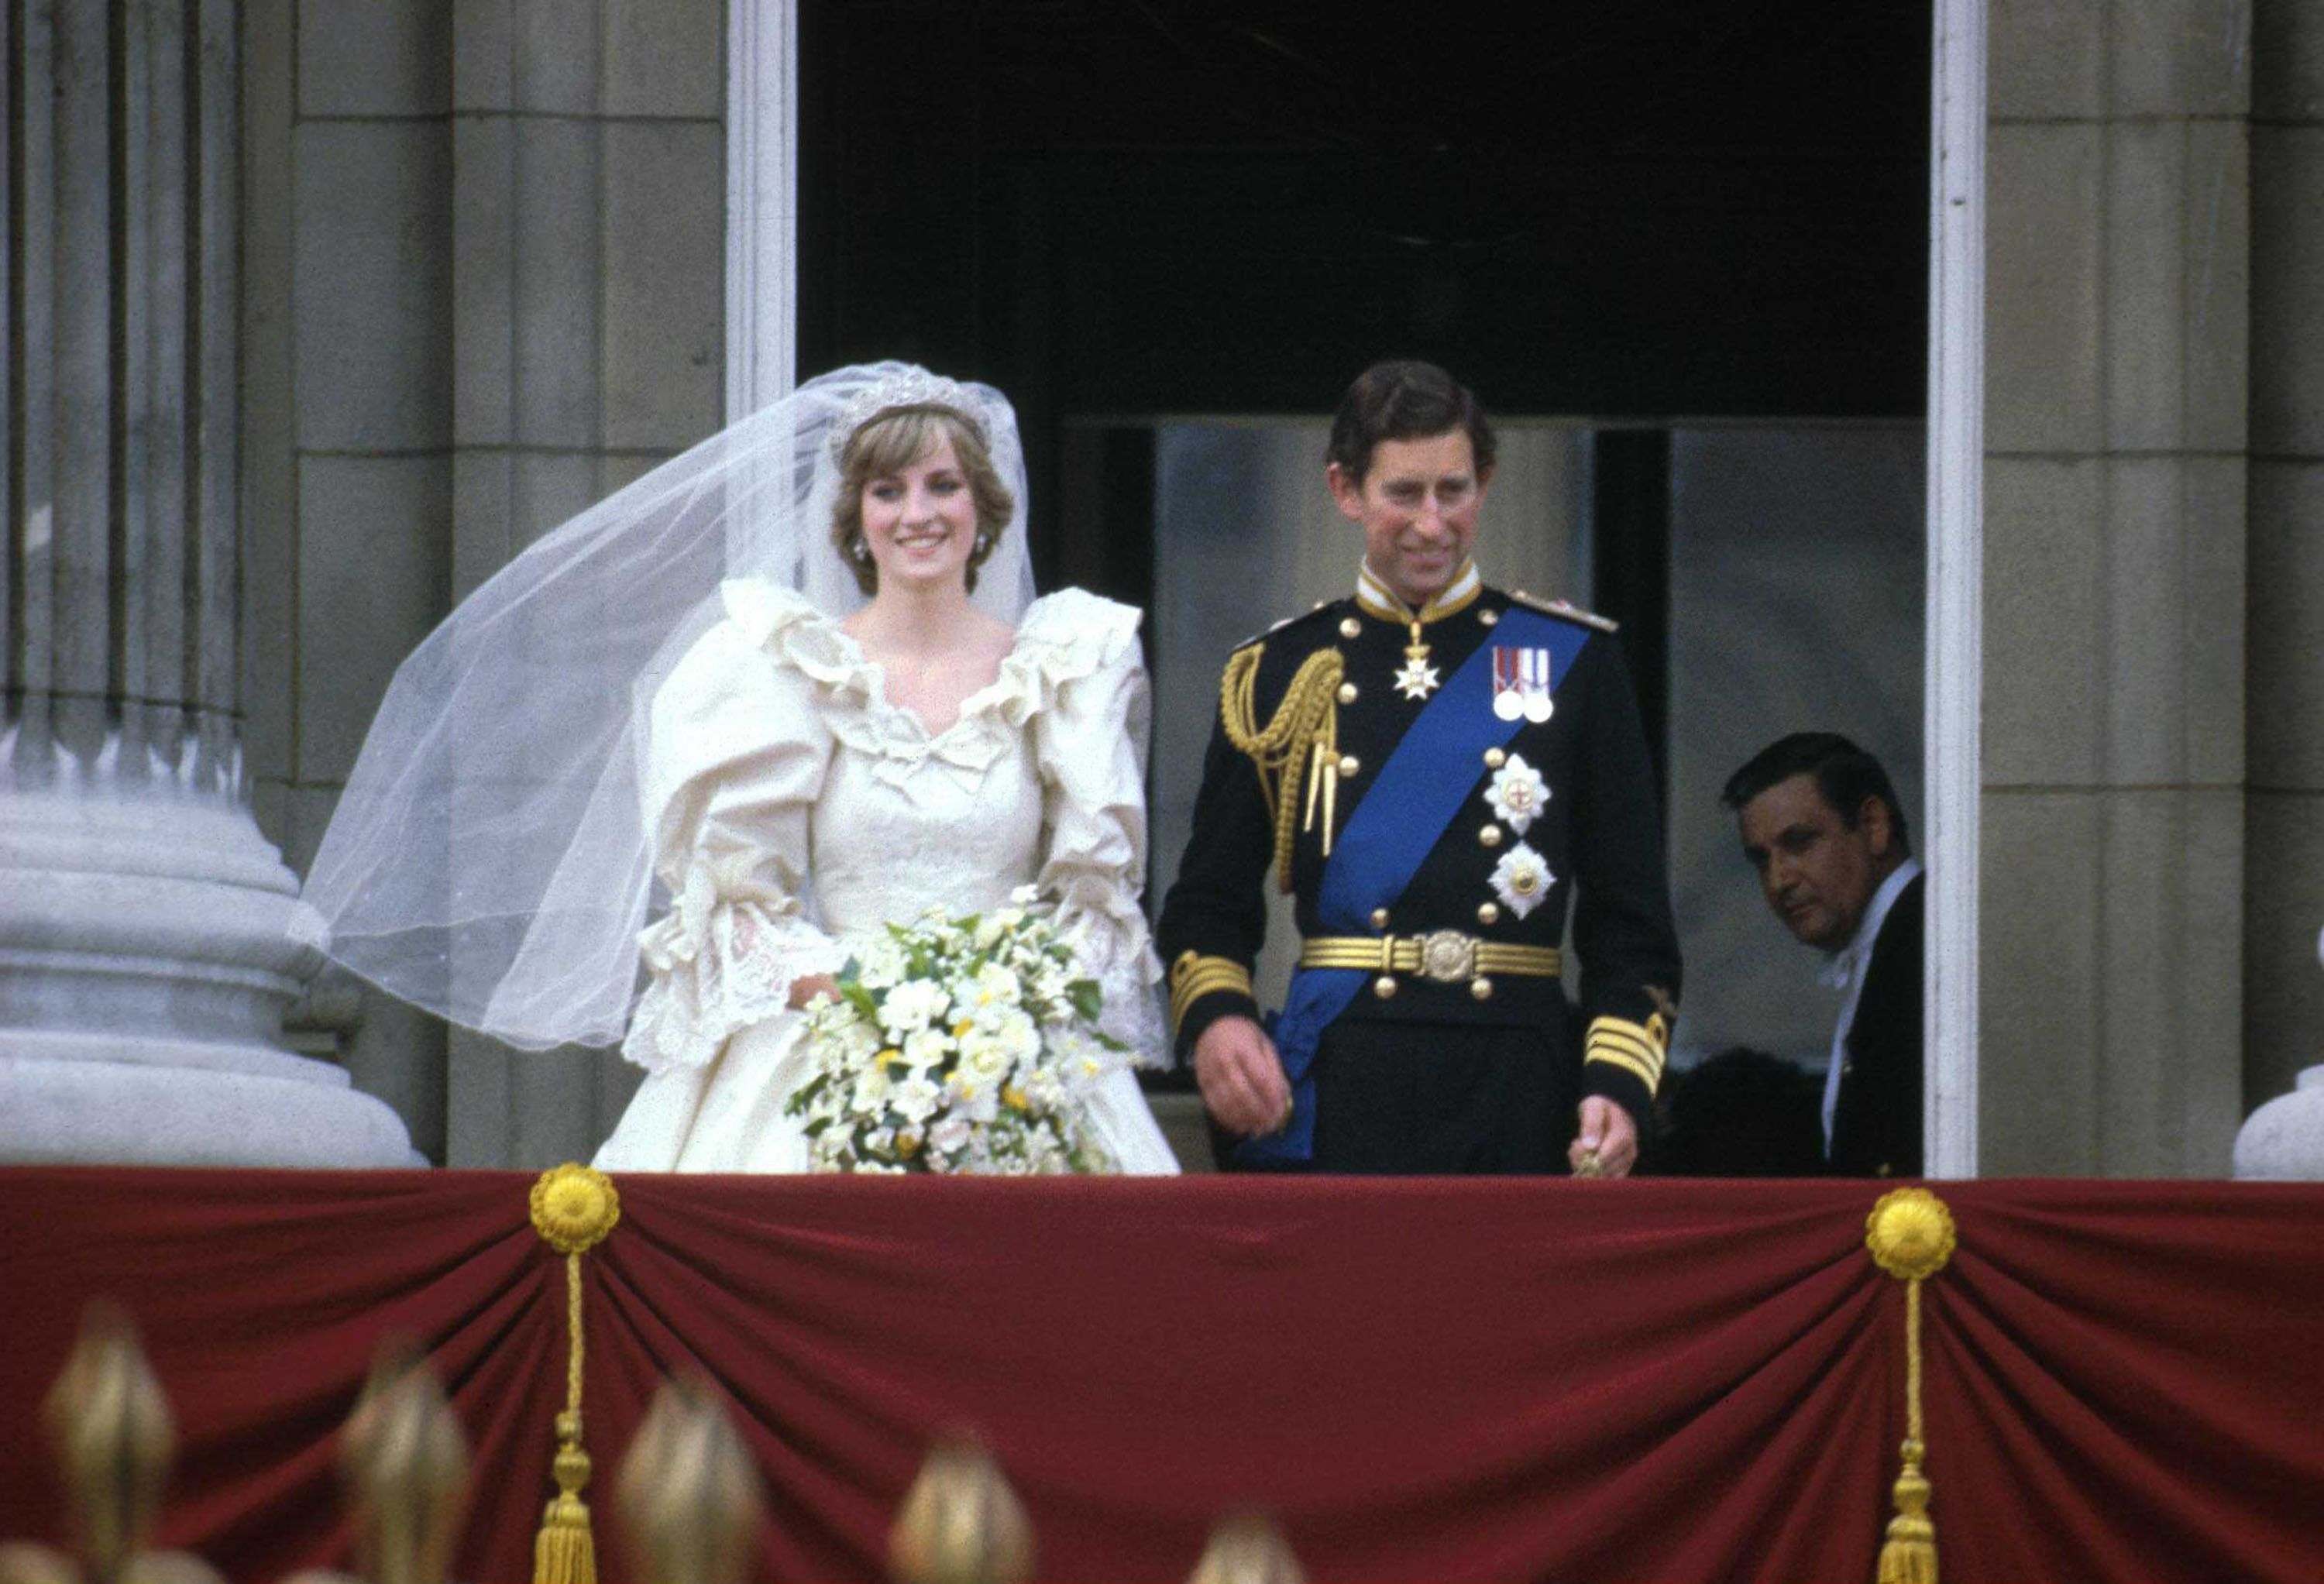 Princess Diana S Wedding Charles And Most Glamorous Day Details